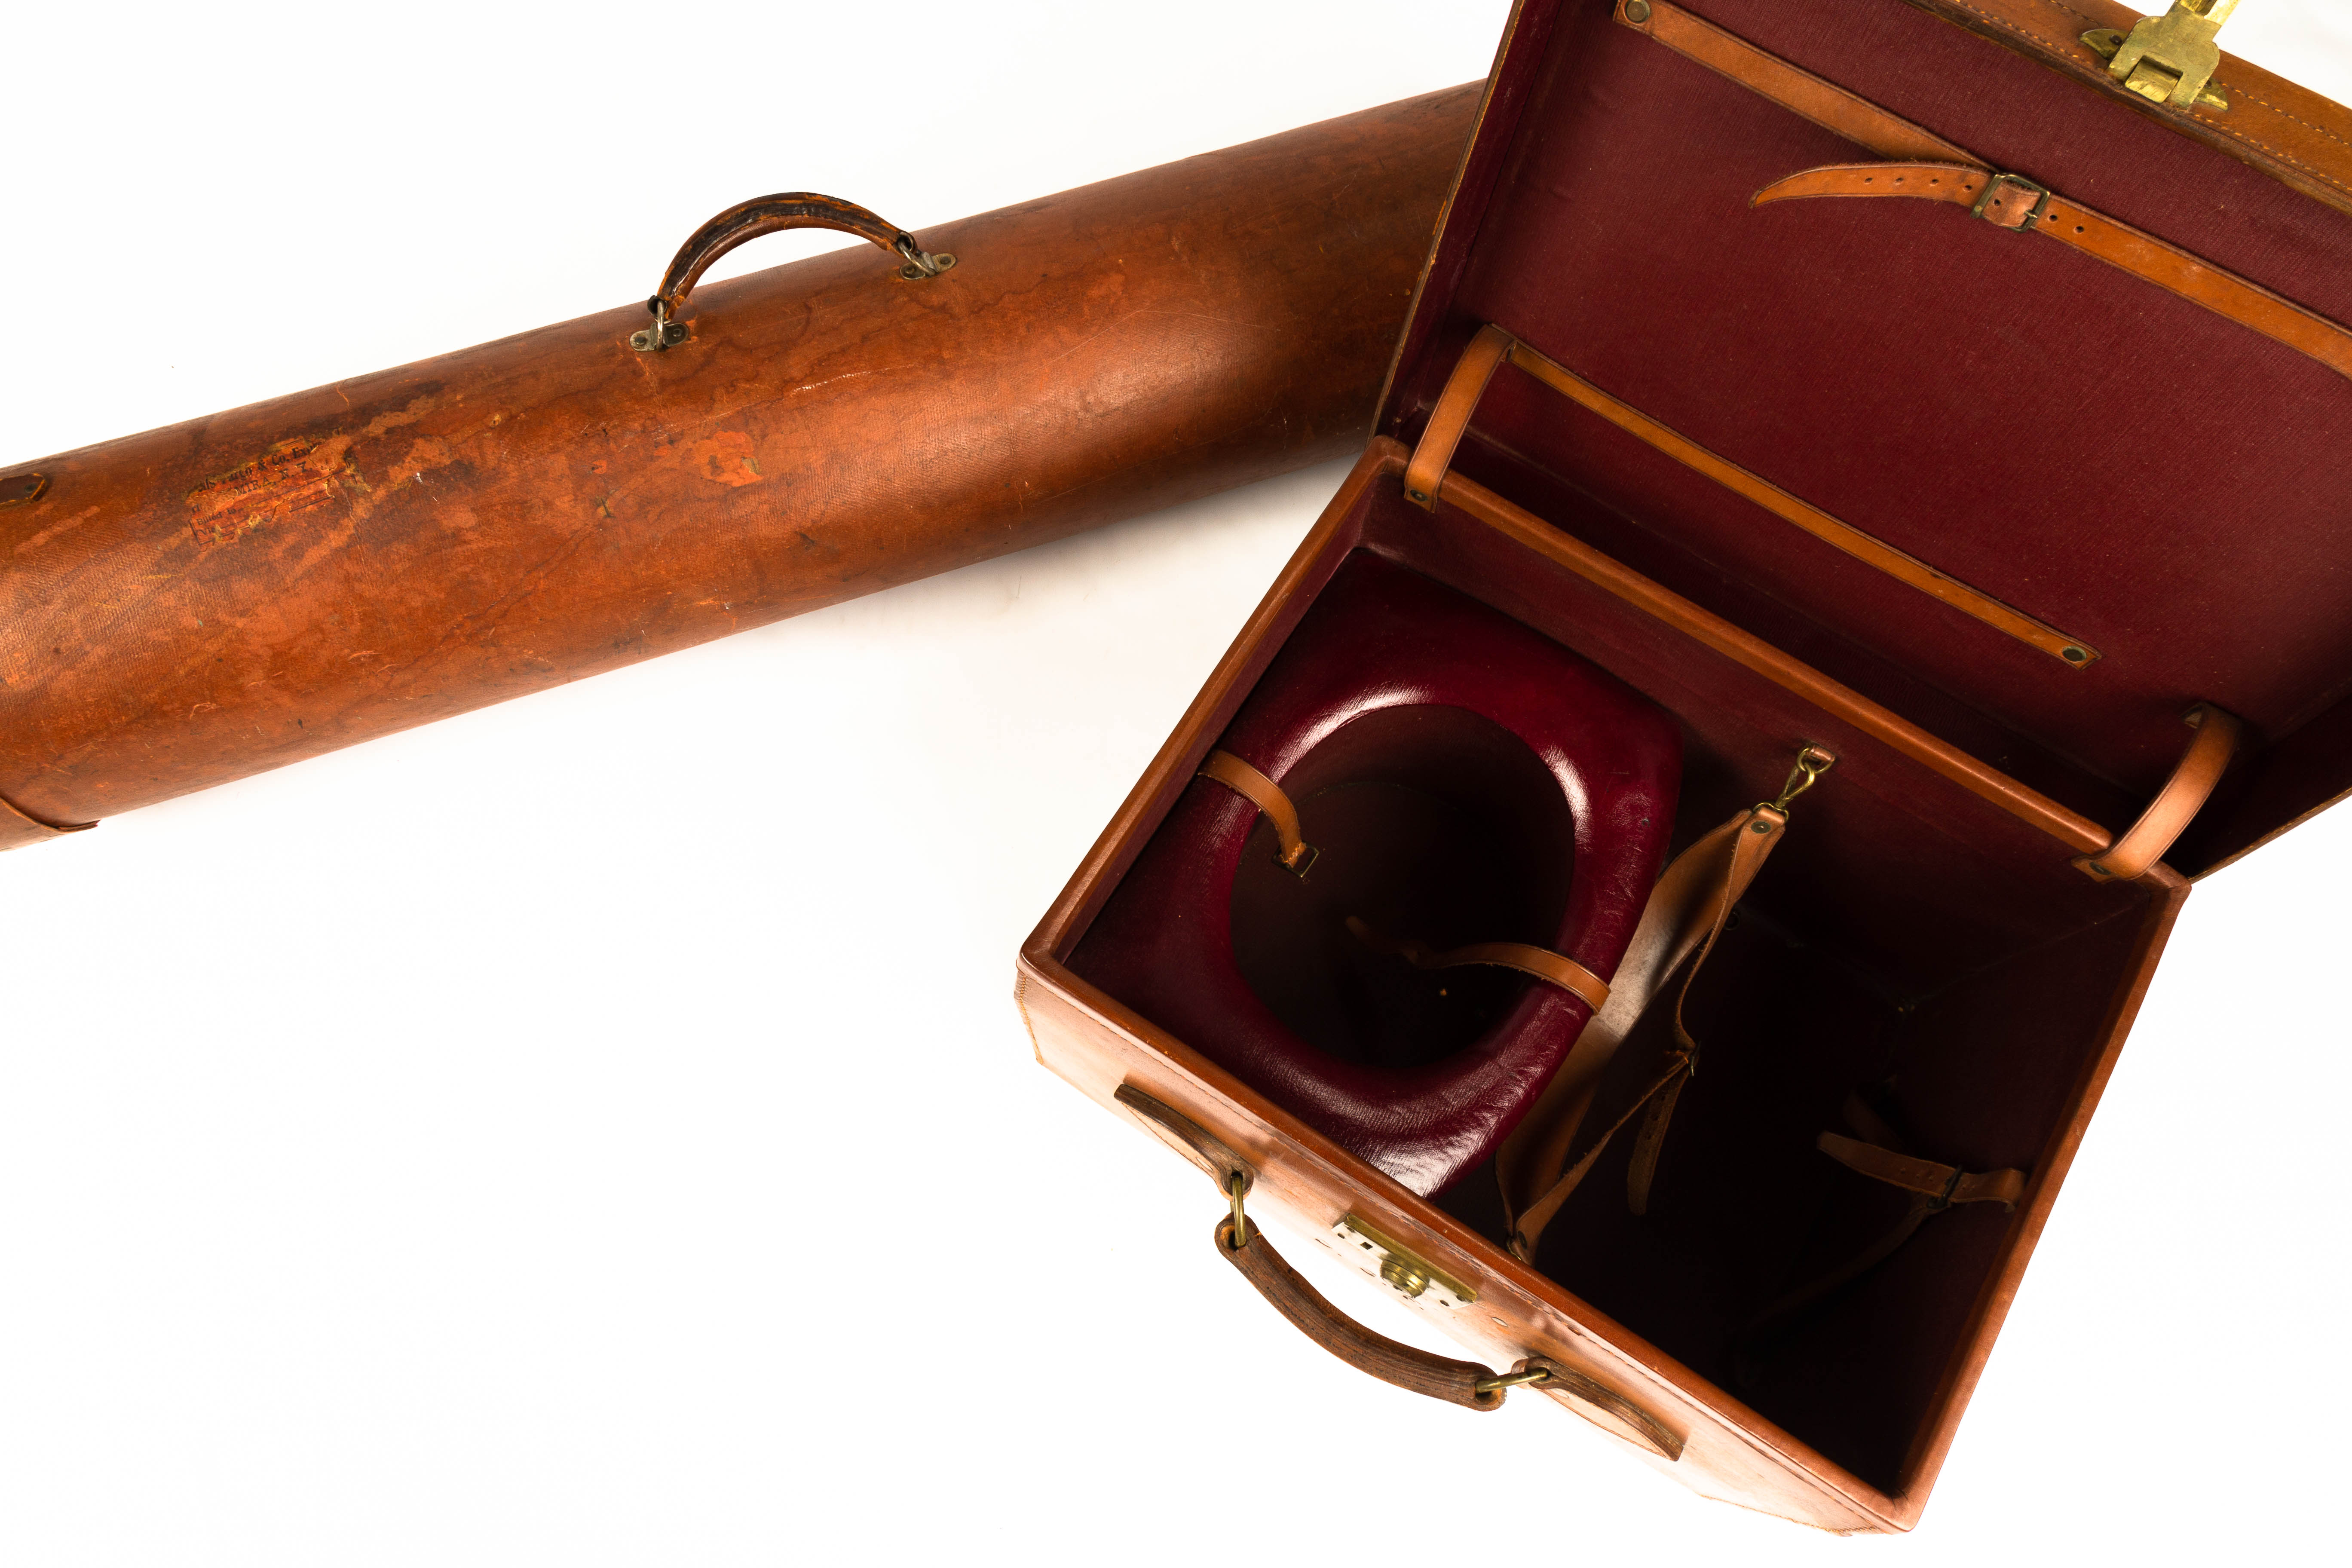 Lot 118 - Map Case and Top Hat Case